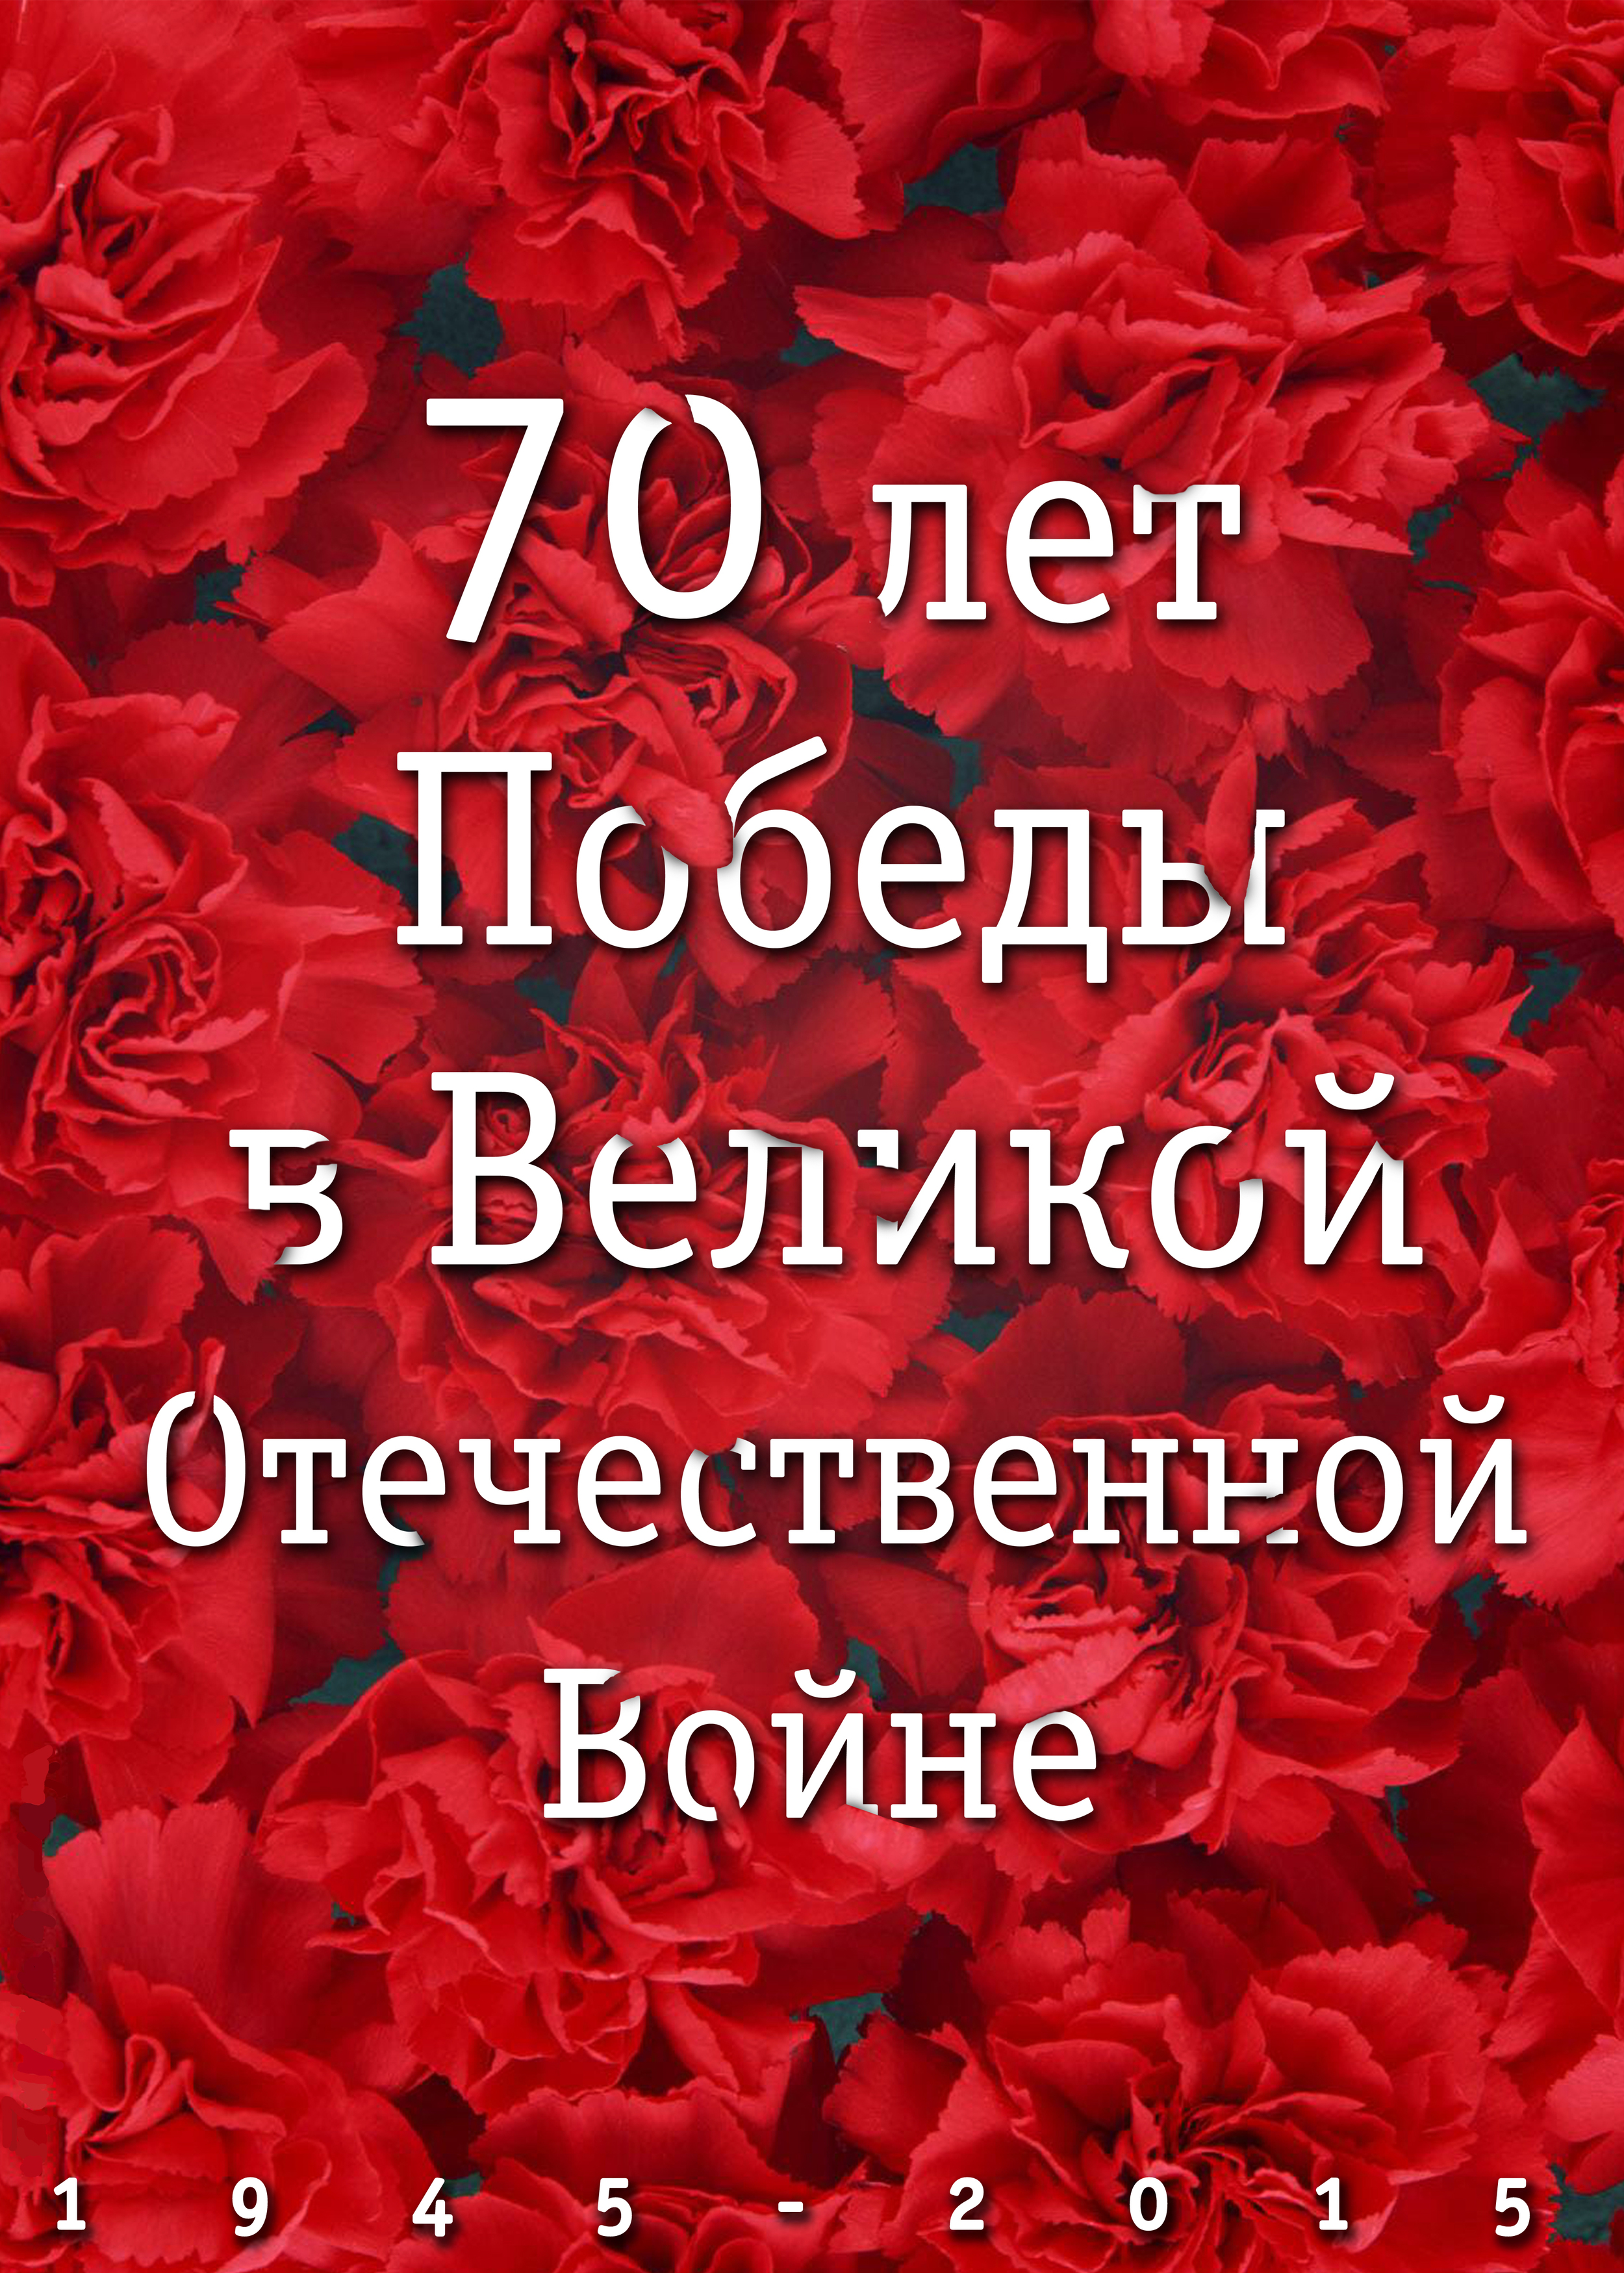 70 years of the Great Patriotic War